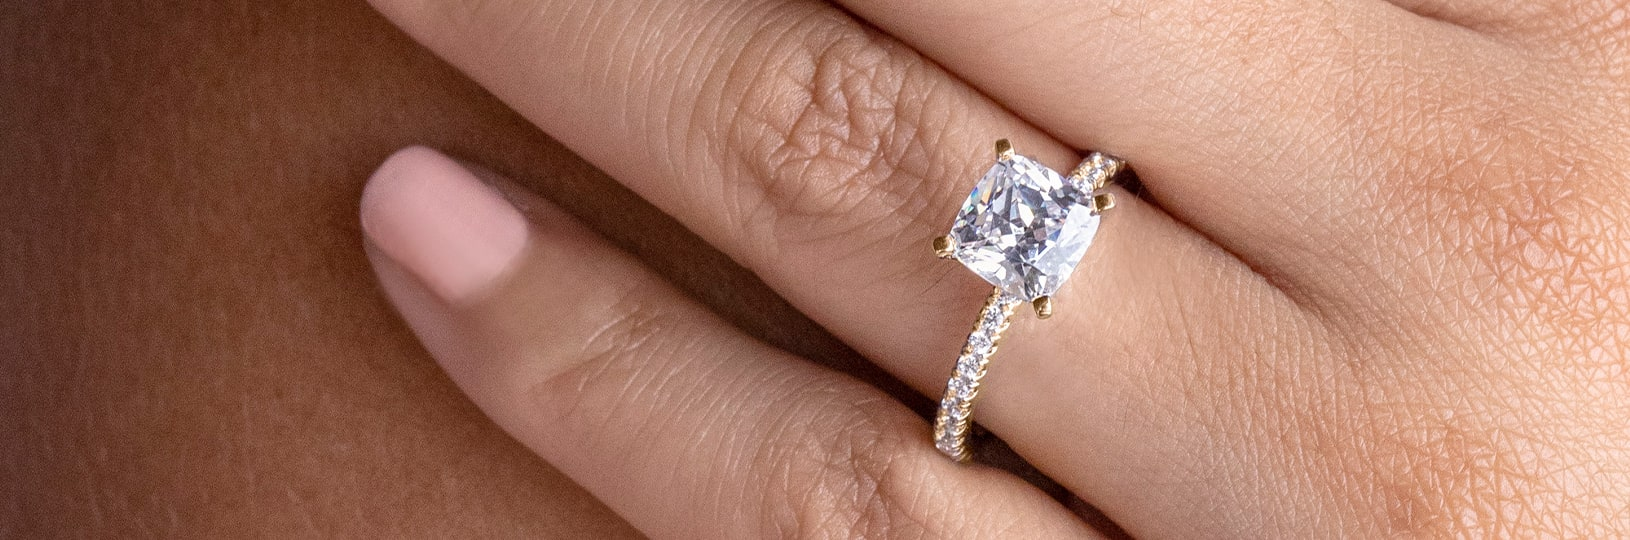 A princess cut stone with an accented band